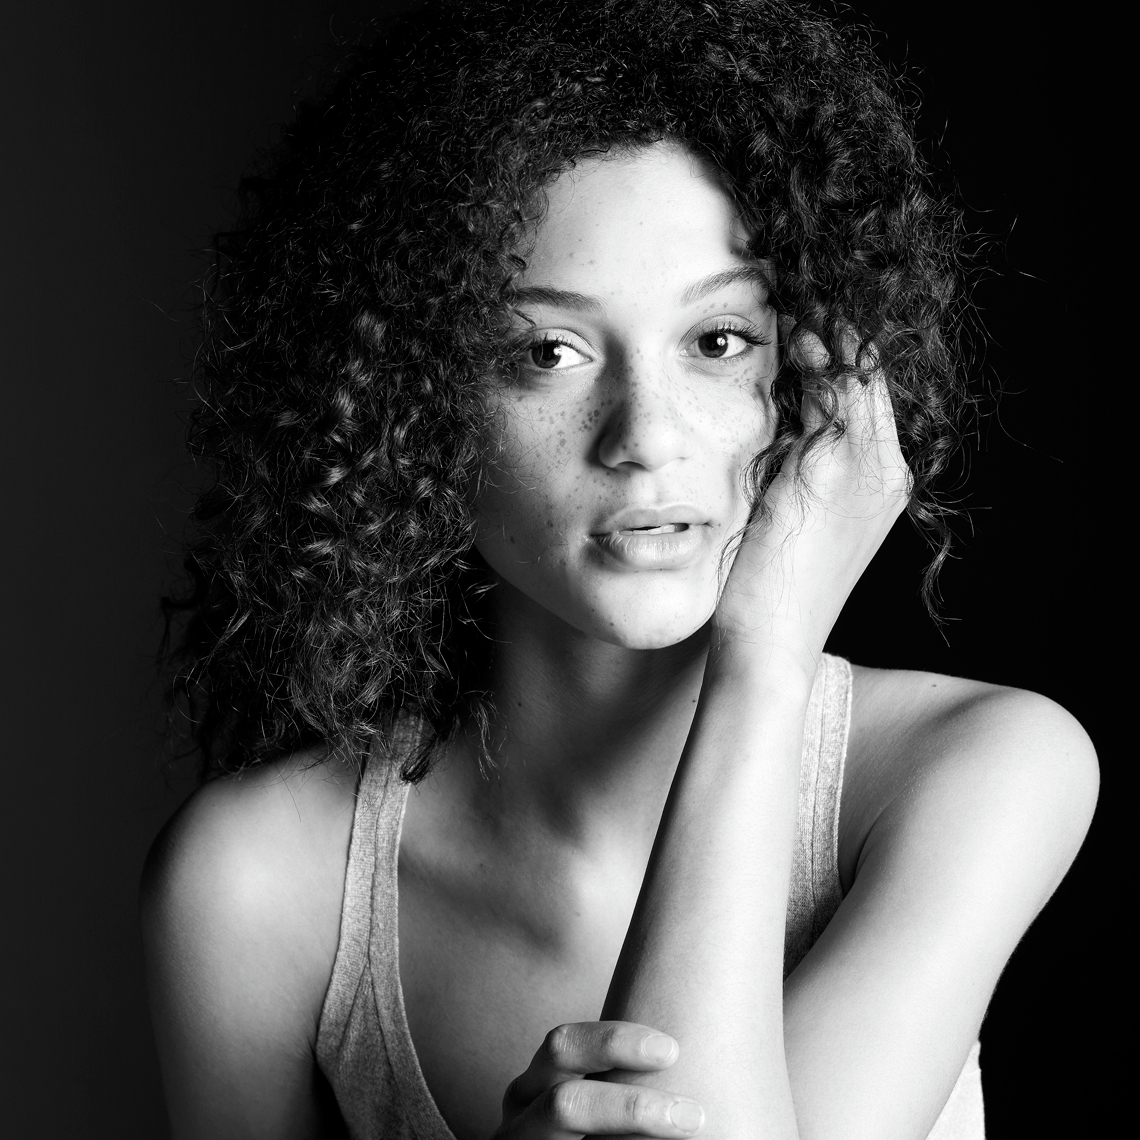 Lauren_Johnson_soulful portrait in black and white_African American Freckles